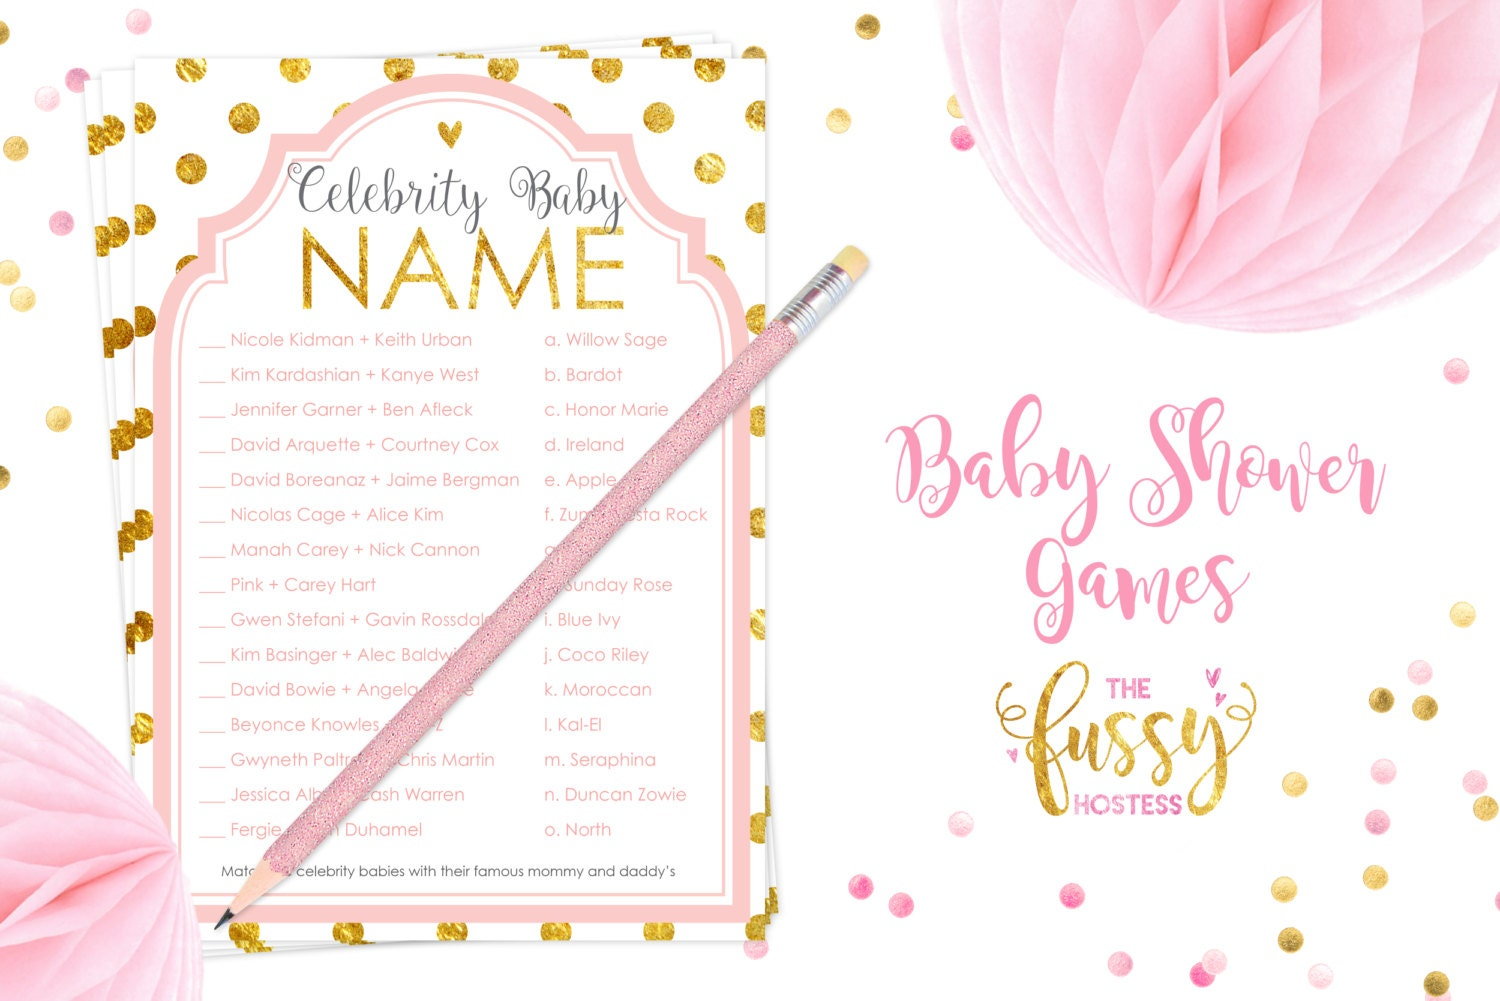 Celebrity Baby Names - InfoPlease